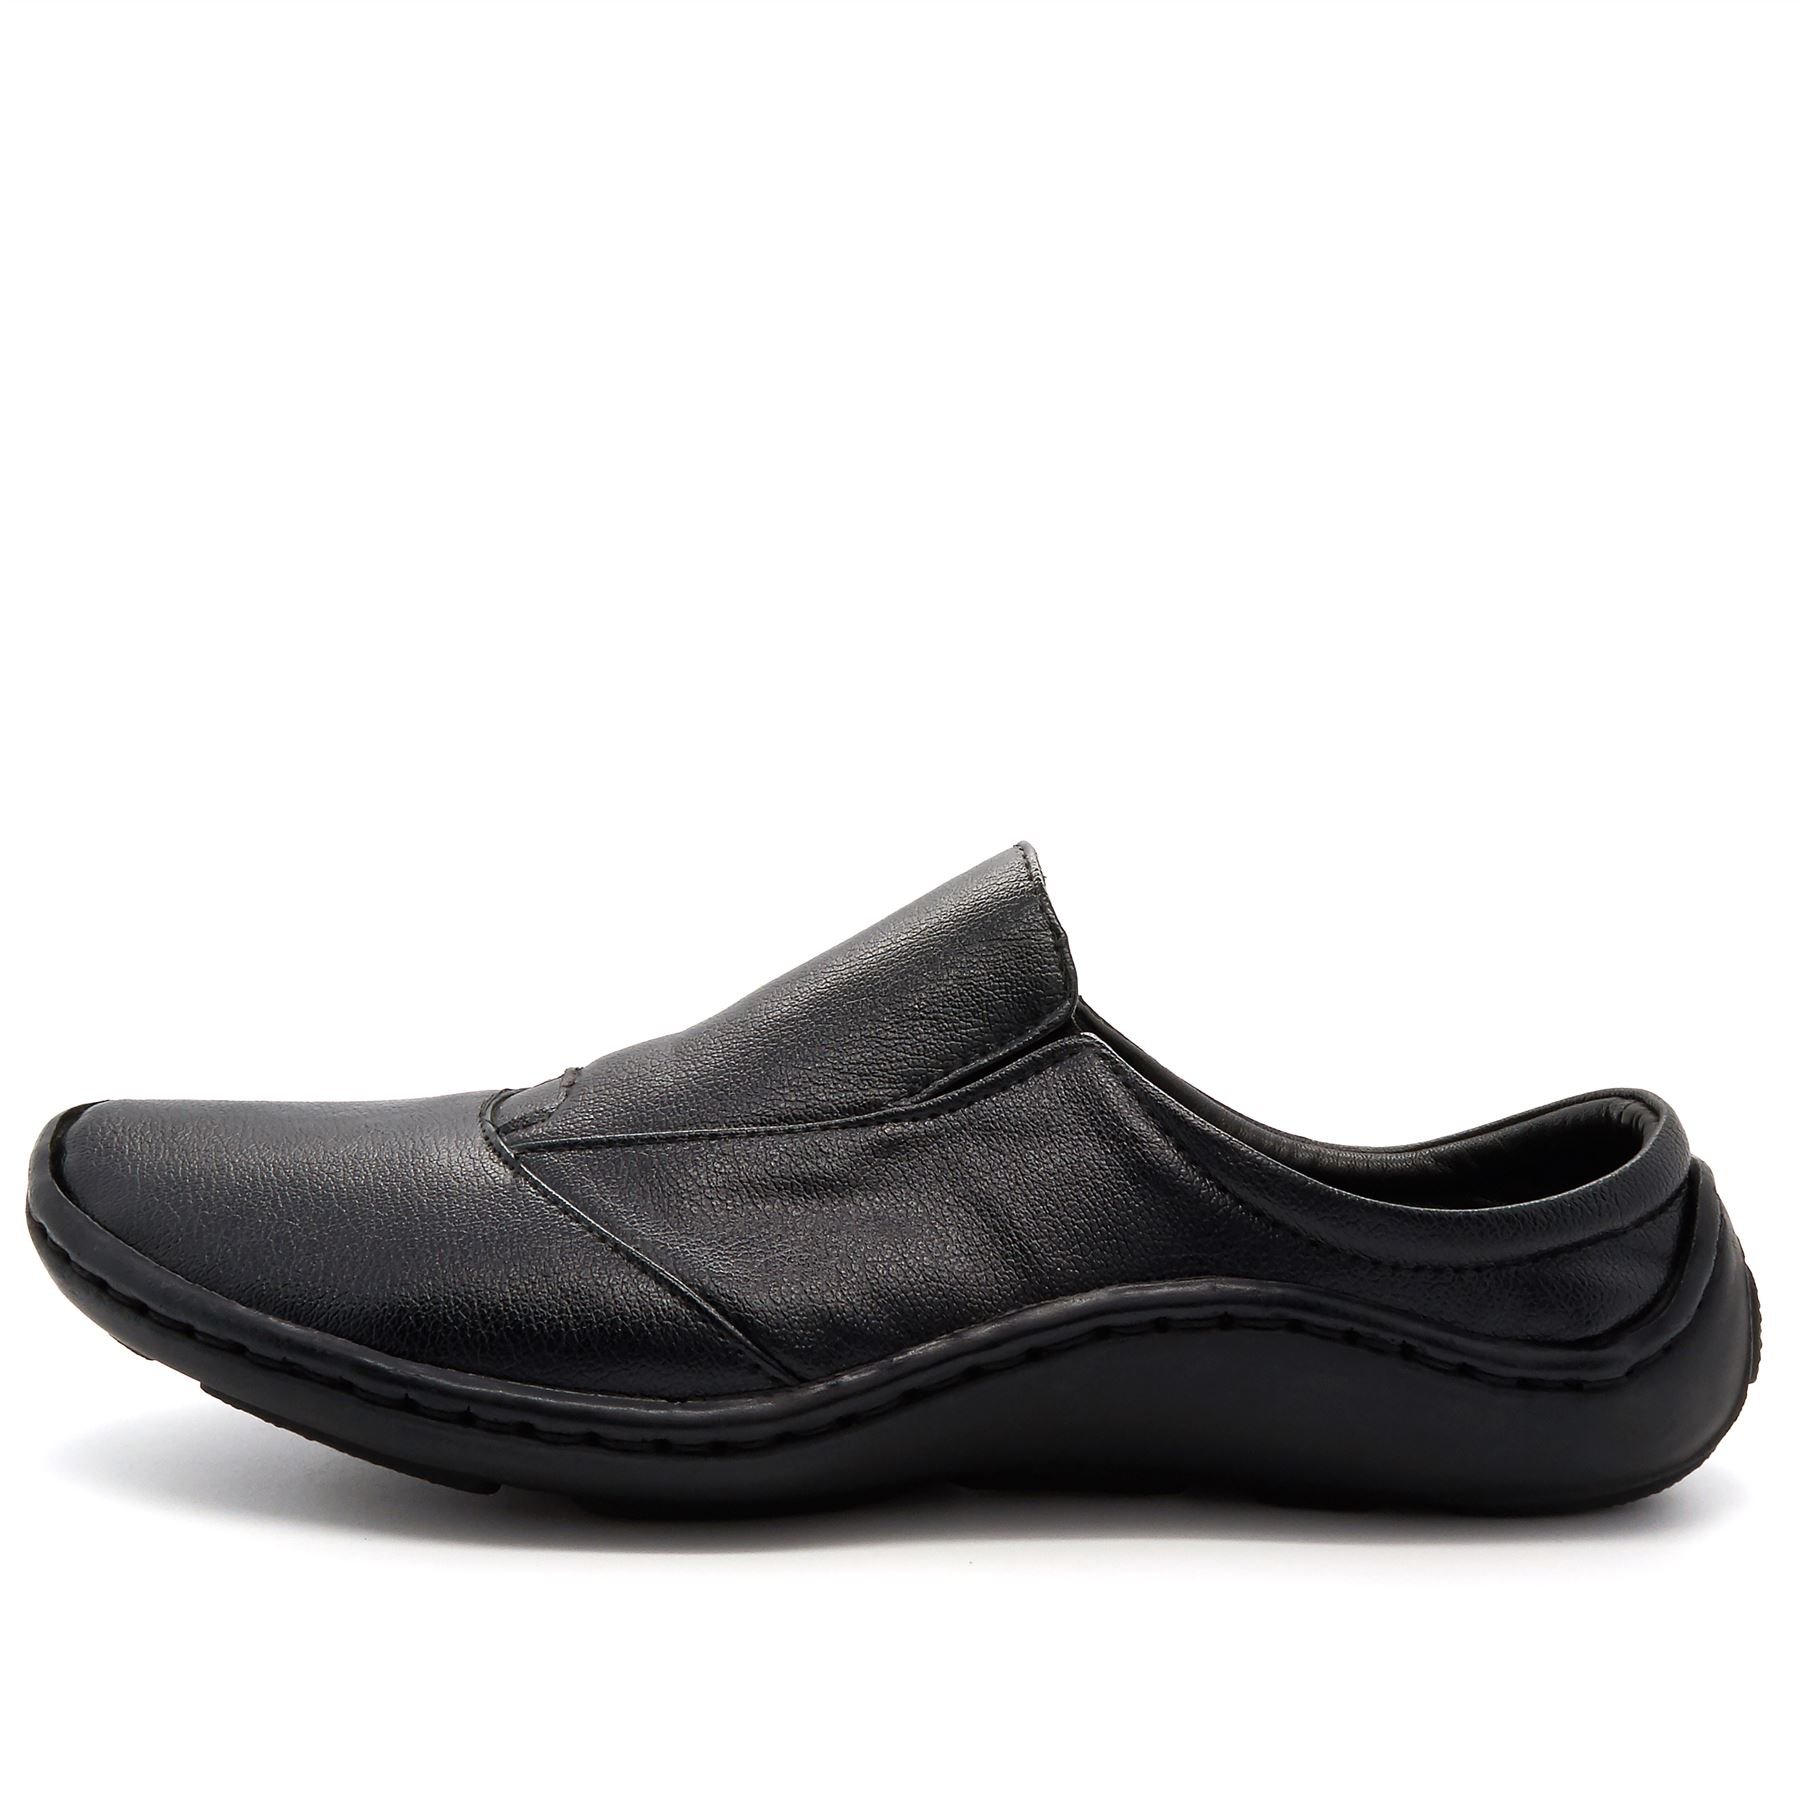 China Slip-on Summer Shoes, China Slip-on Summer Shoes Suppliers and Manufacturers Directory - Source a Large Selection of Slip-on Summer Shoes Products at summer shoes,summer woman shoe,summer shoes for babies from China chaplin-favor.tk